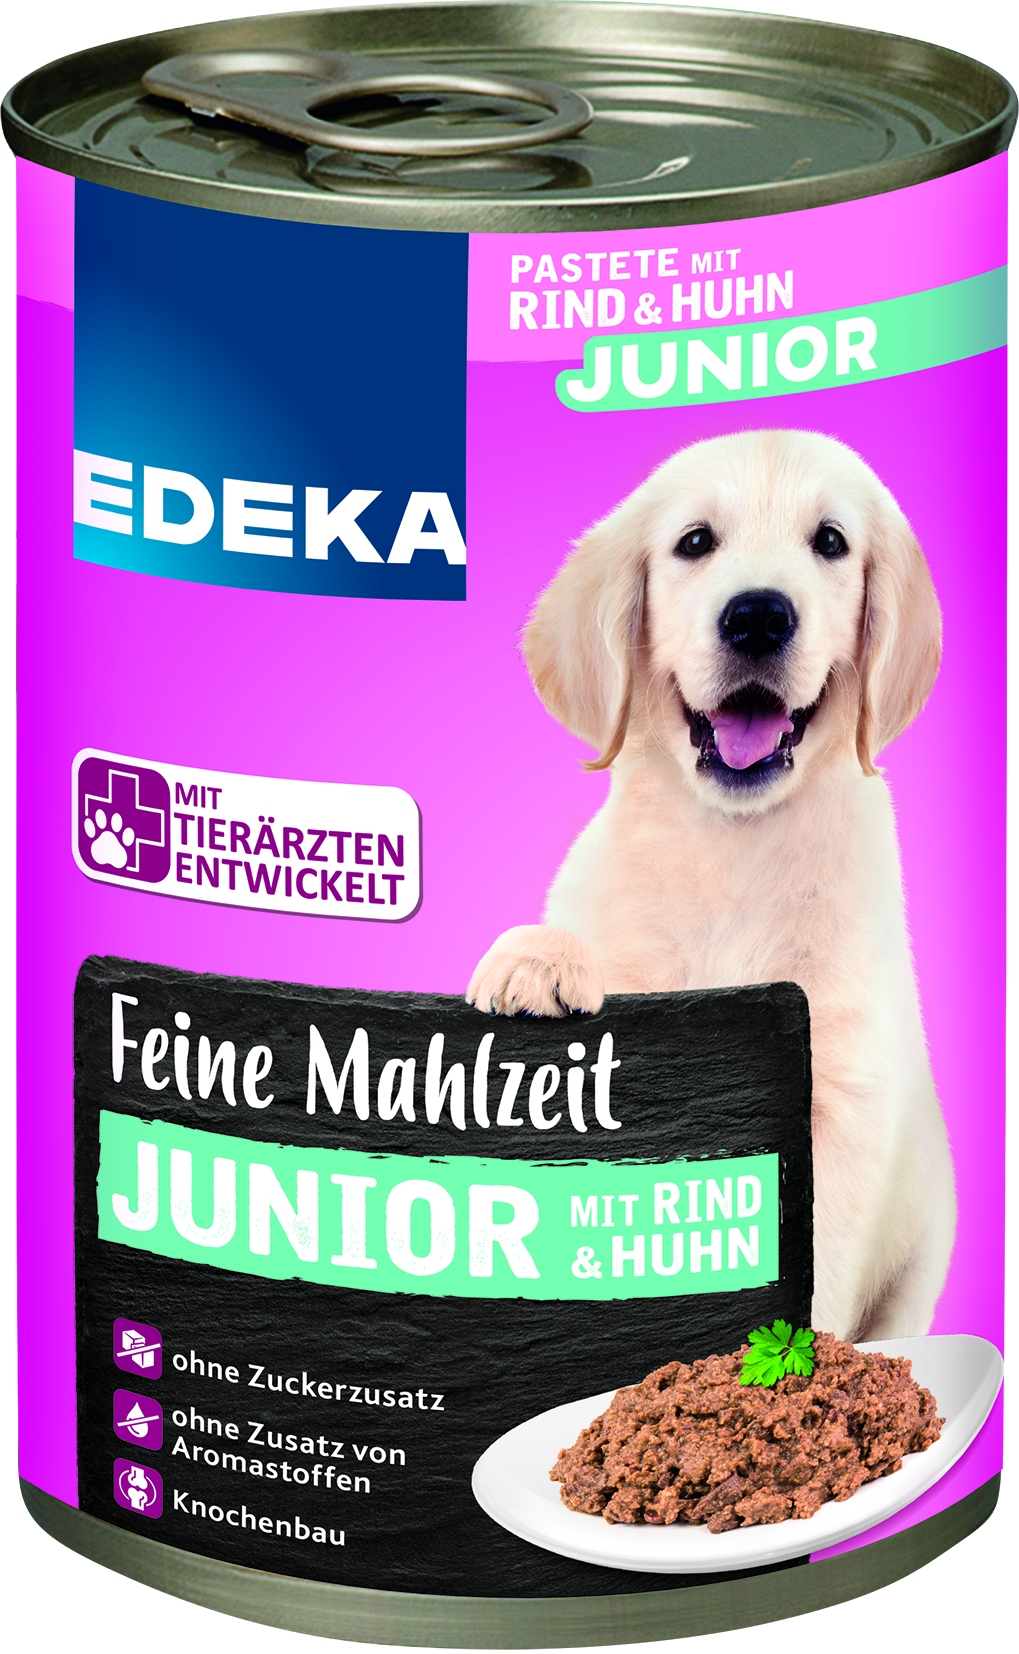 Dog Junior Gefluegel